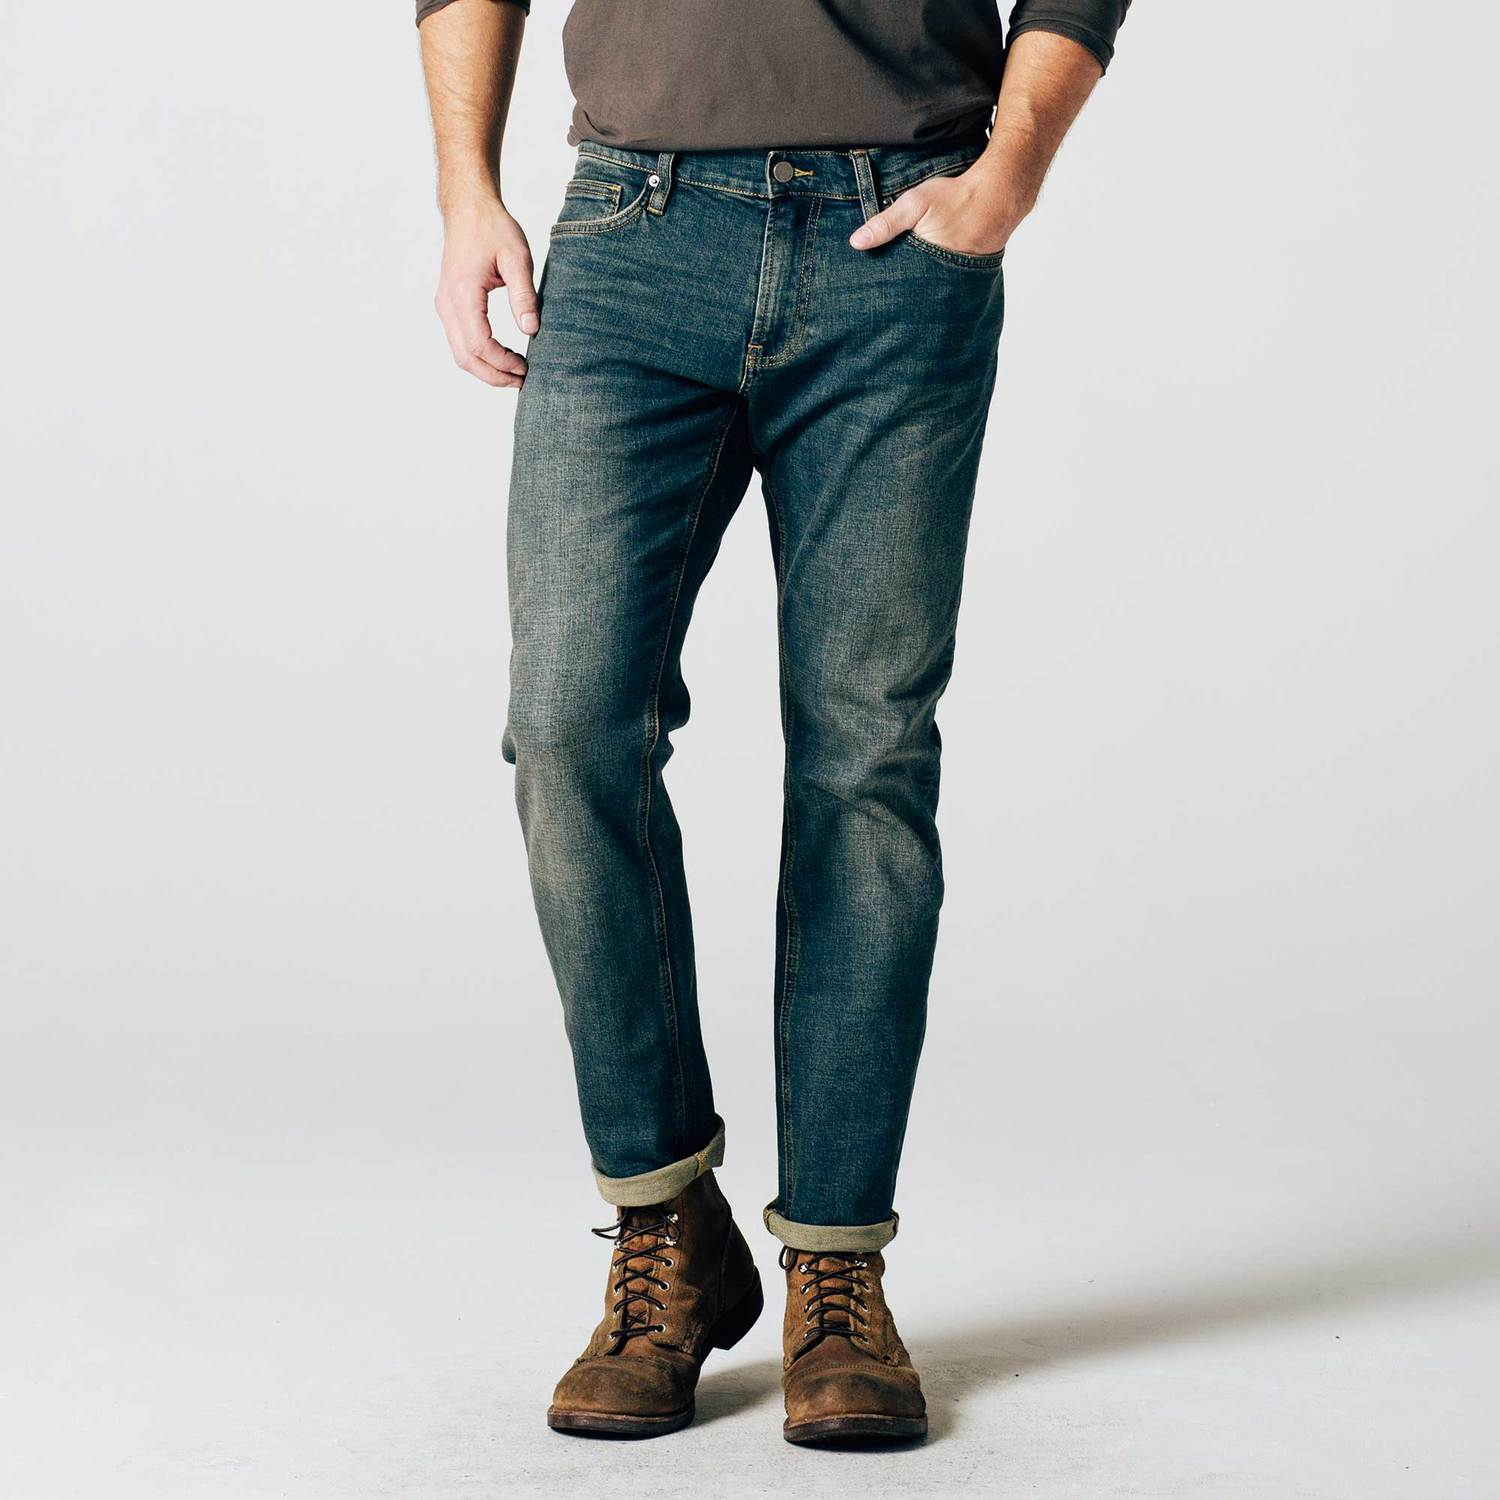 dots comfortable guide fashion jeans to game a blog quintessential your kicking the men sock most comforter stripes socks argyle mens gentlemanual s up